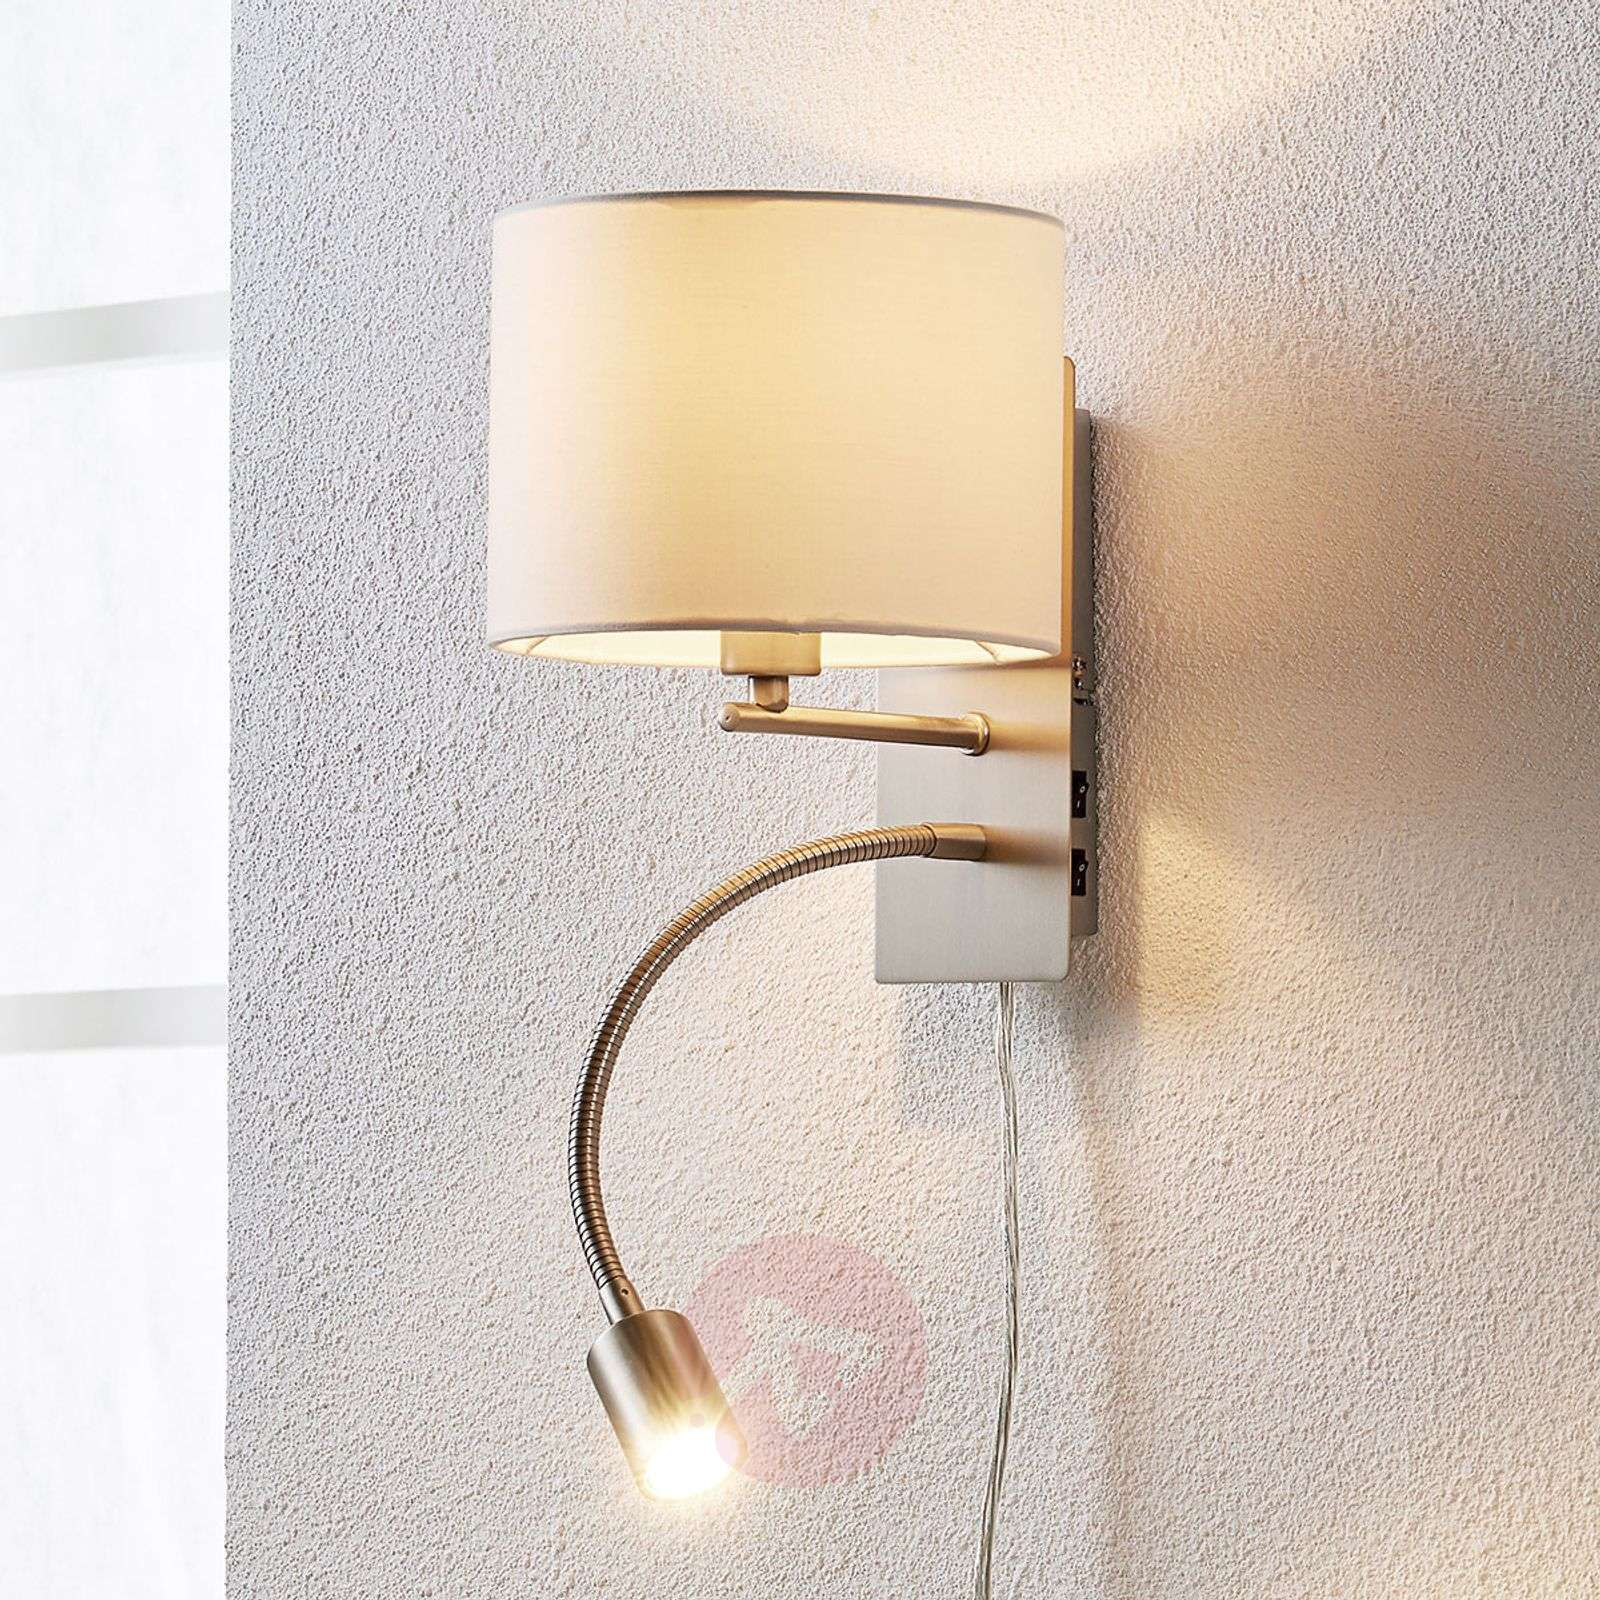 Florens fabric wall lamp with LED reading light-9620921-03